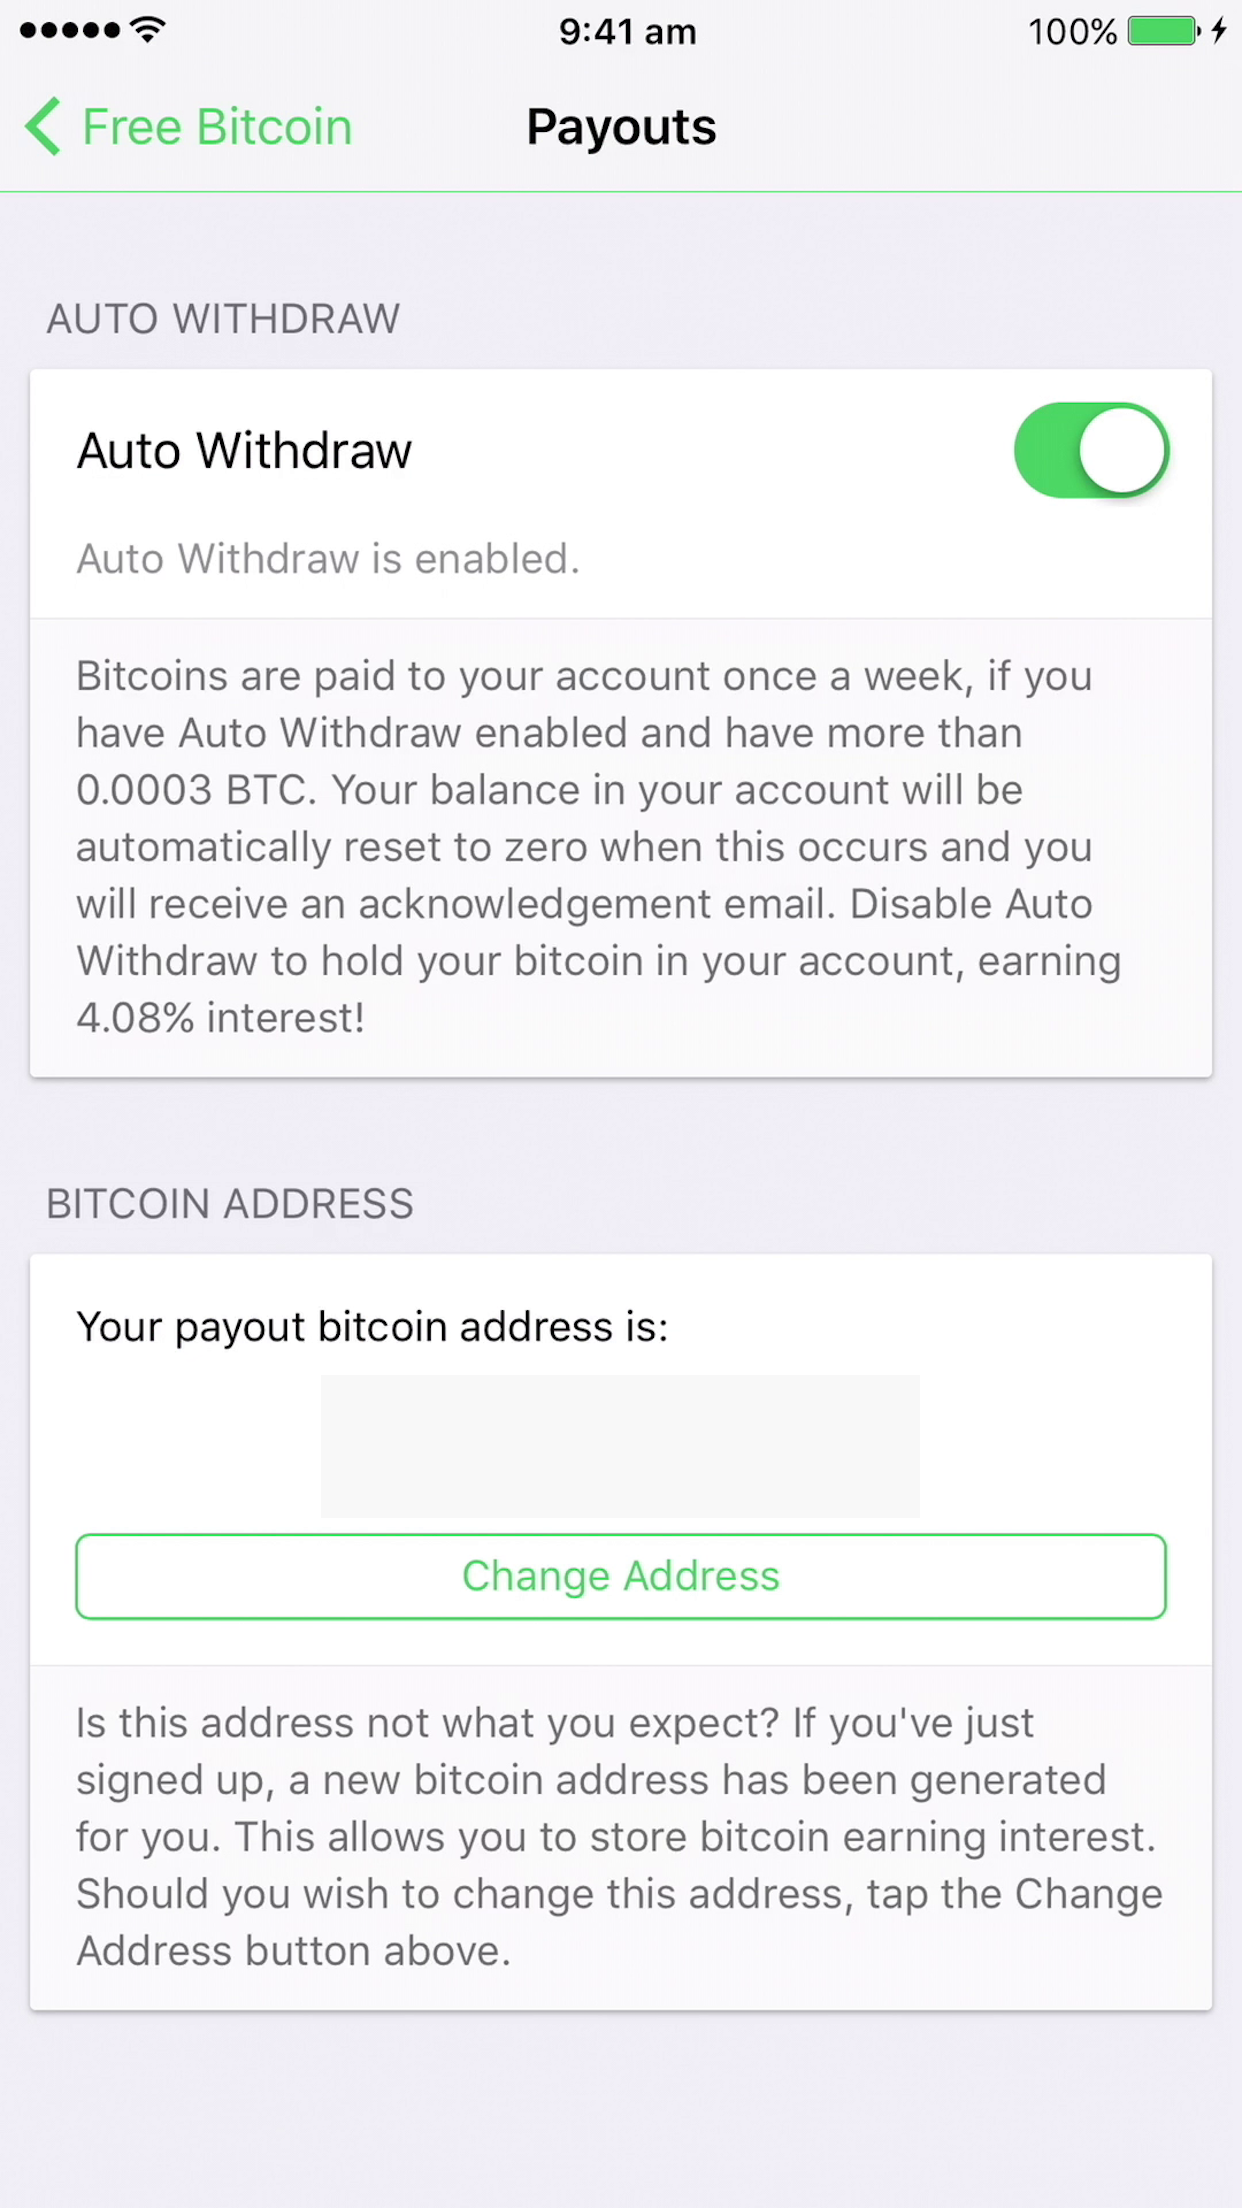 Payout your bitcoin to your bitcoin address